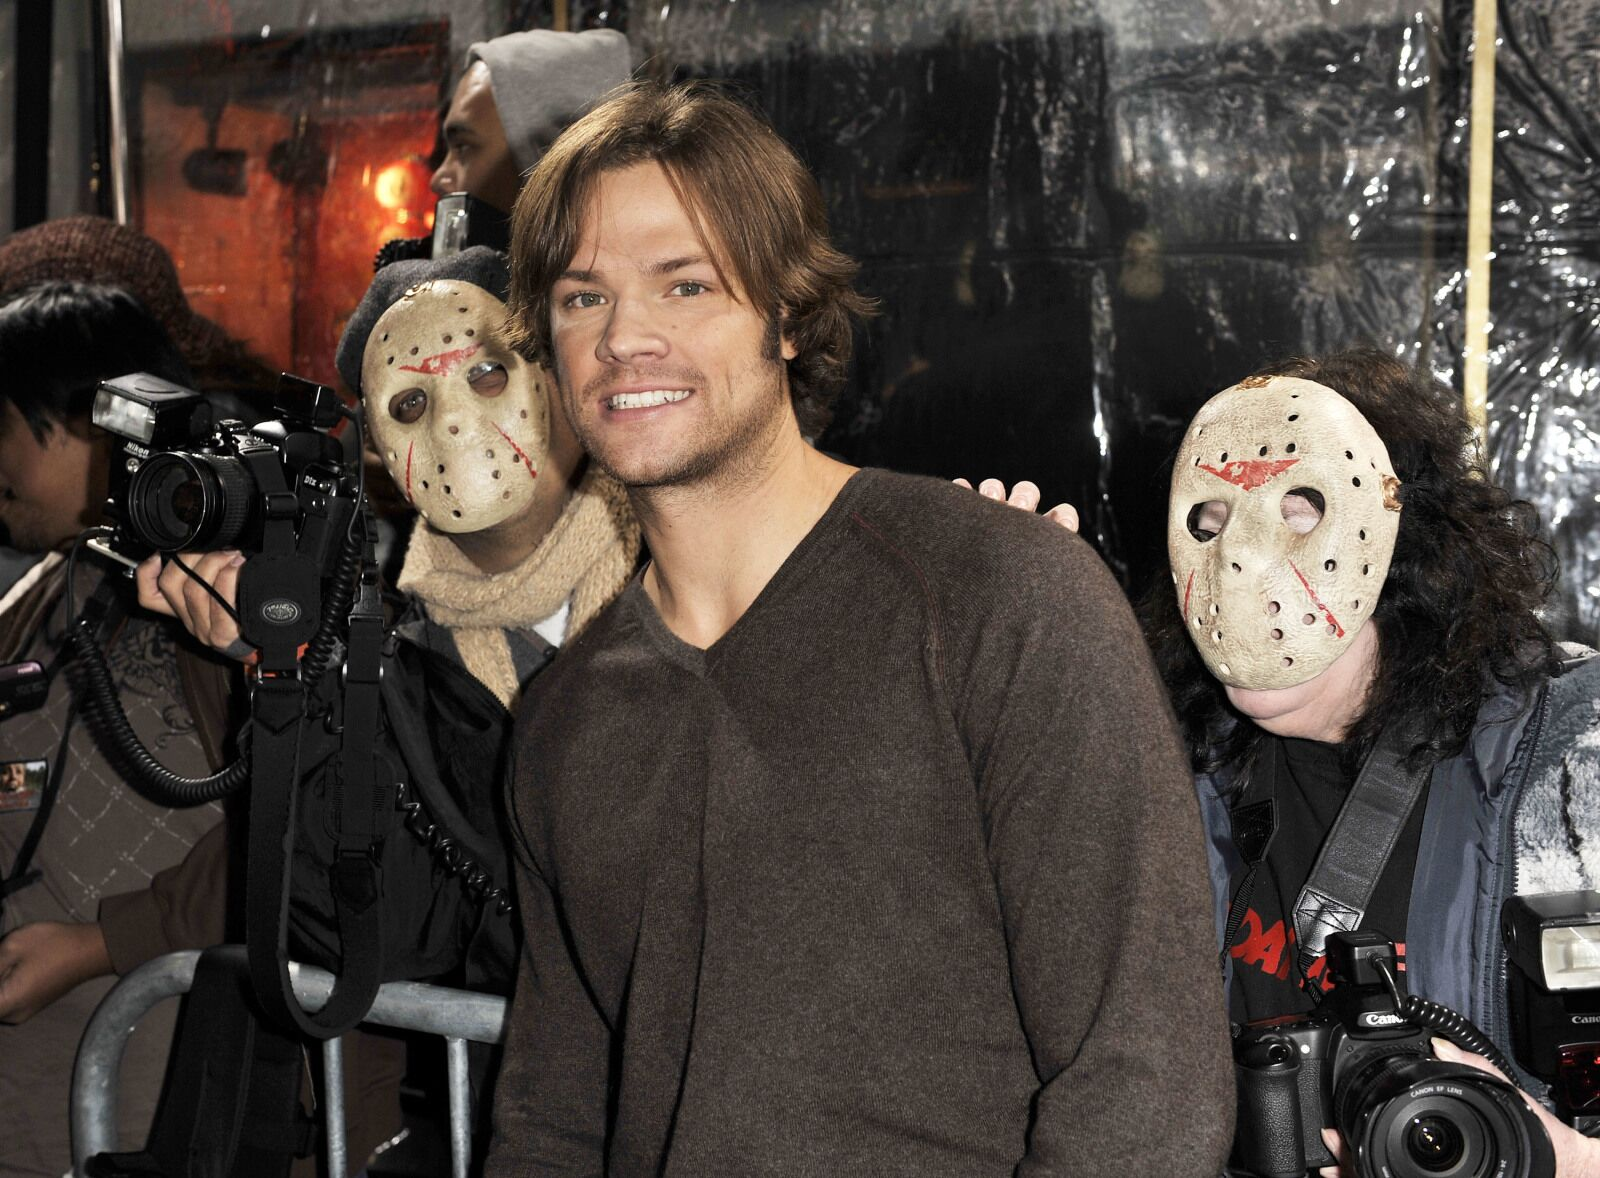 Friday the 13th with Jared Padalecki coming to Netflix in April